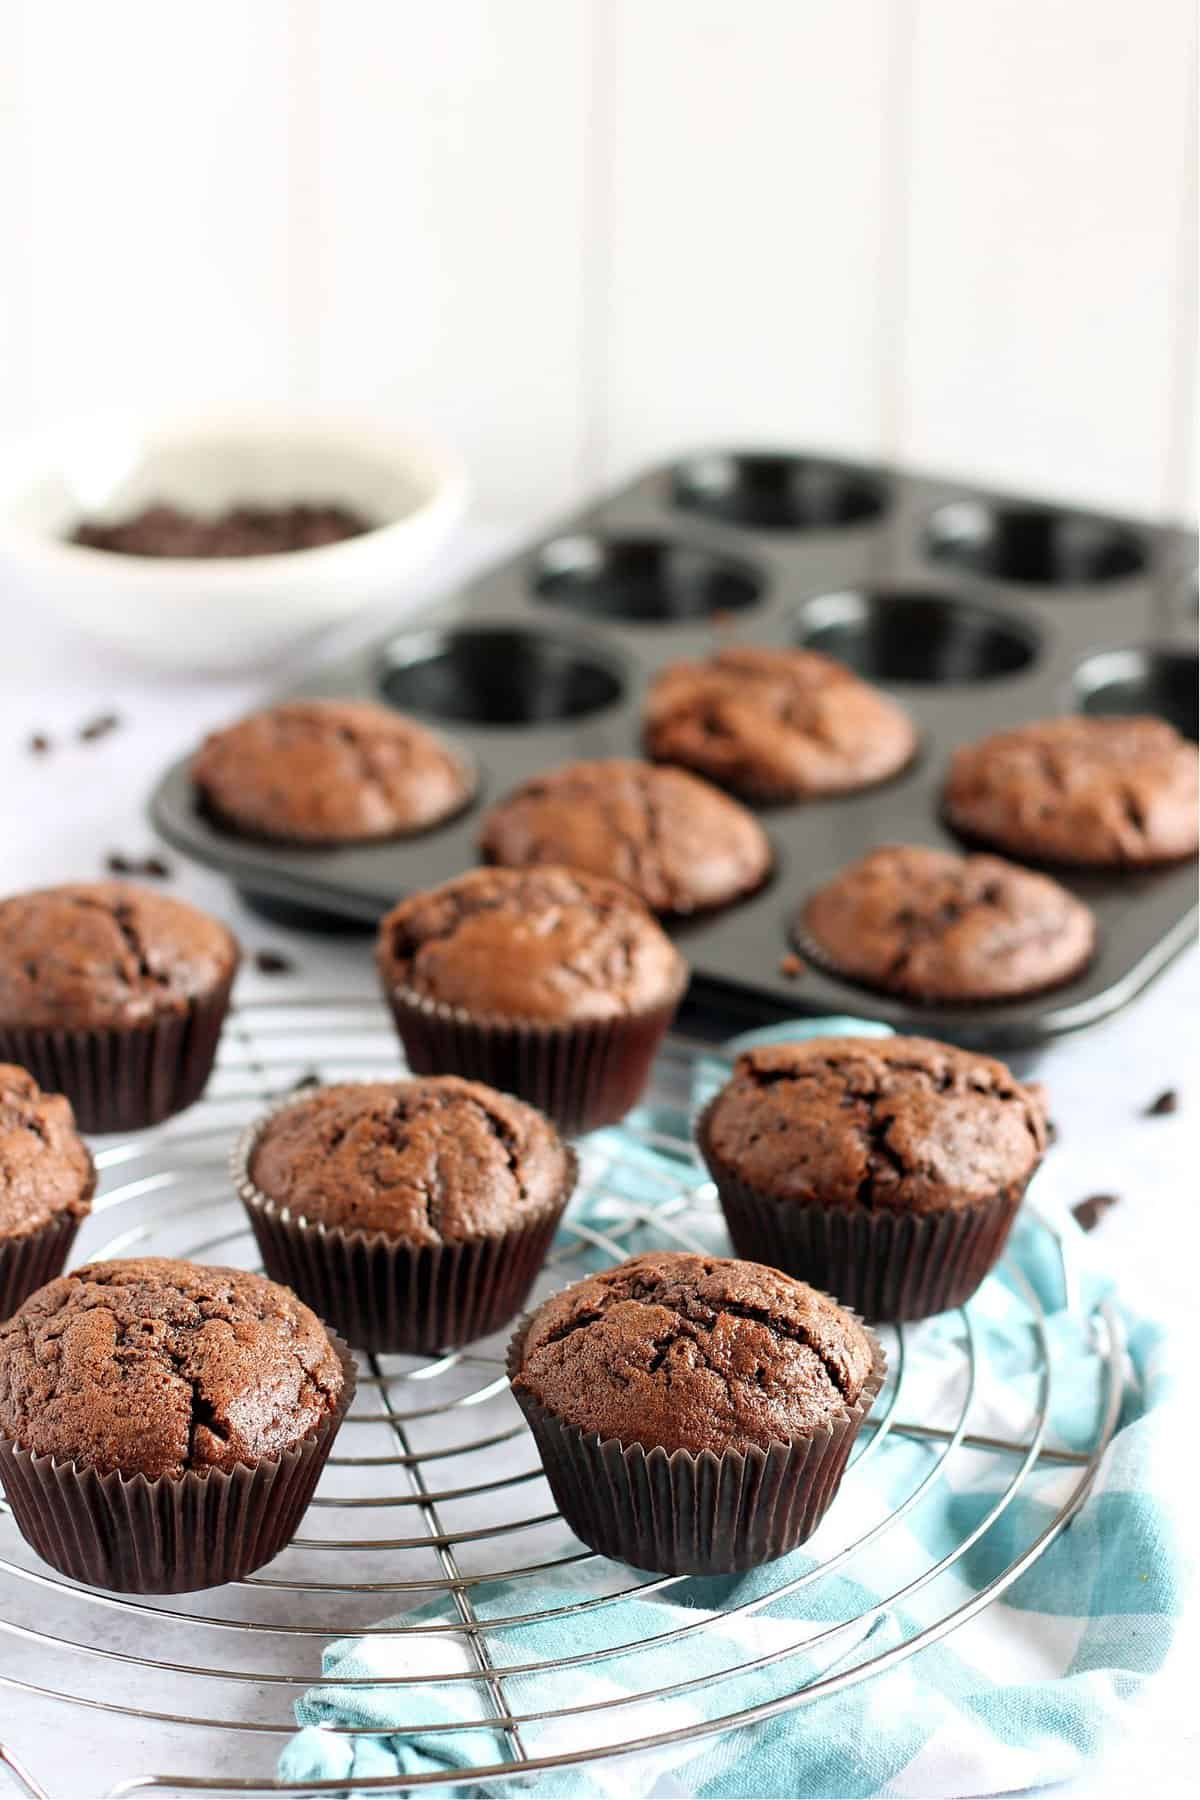 Chocolate courgette muffins on a cooling rack